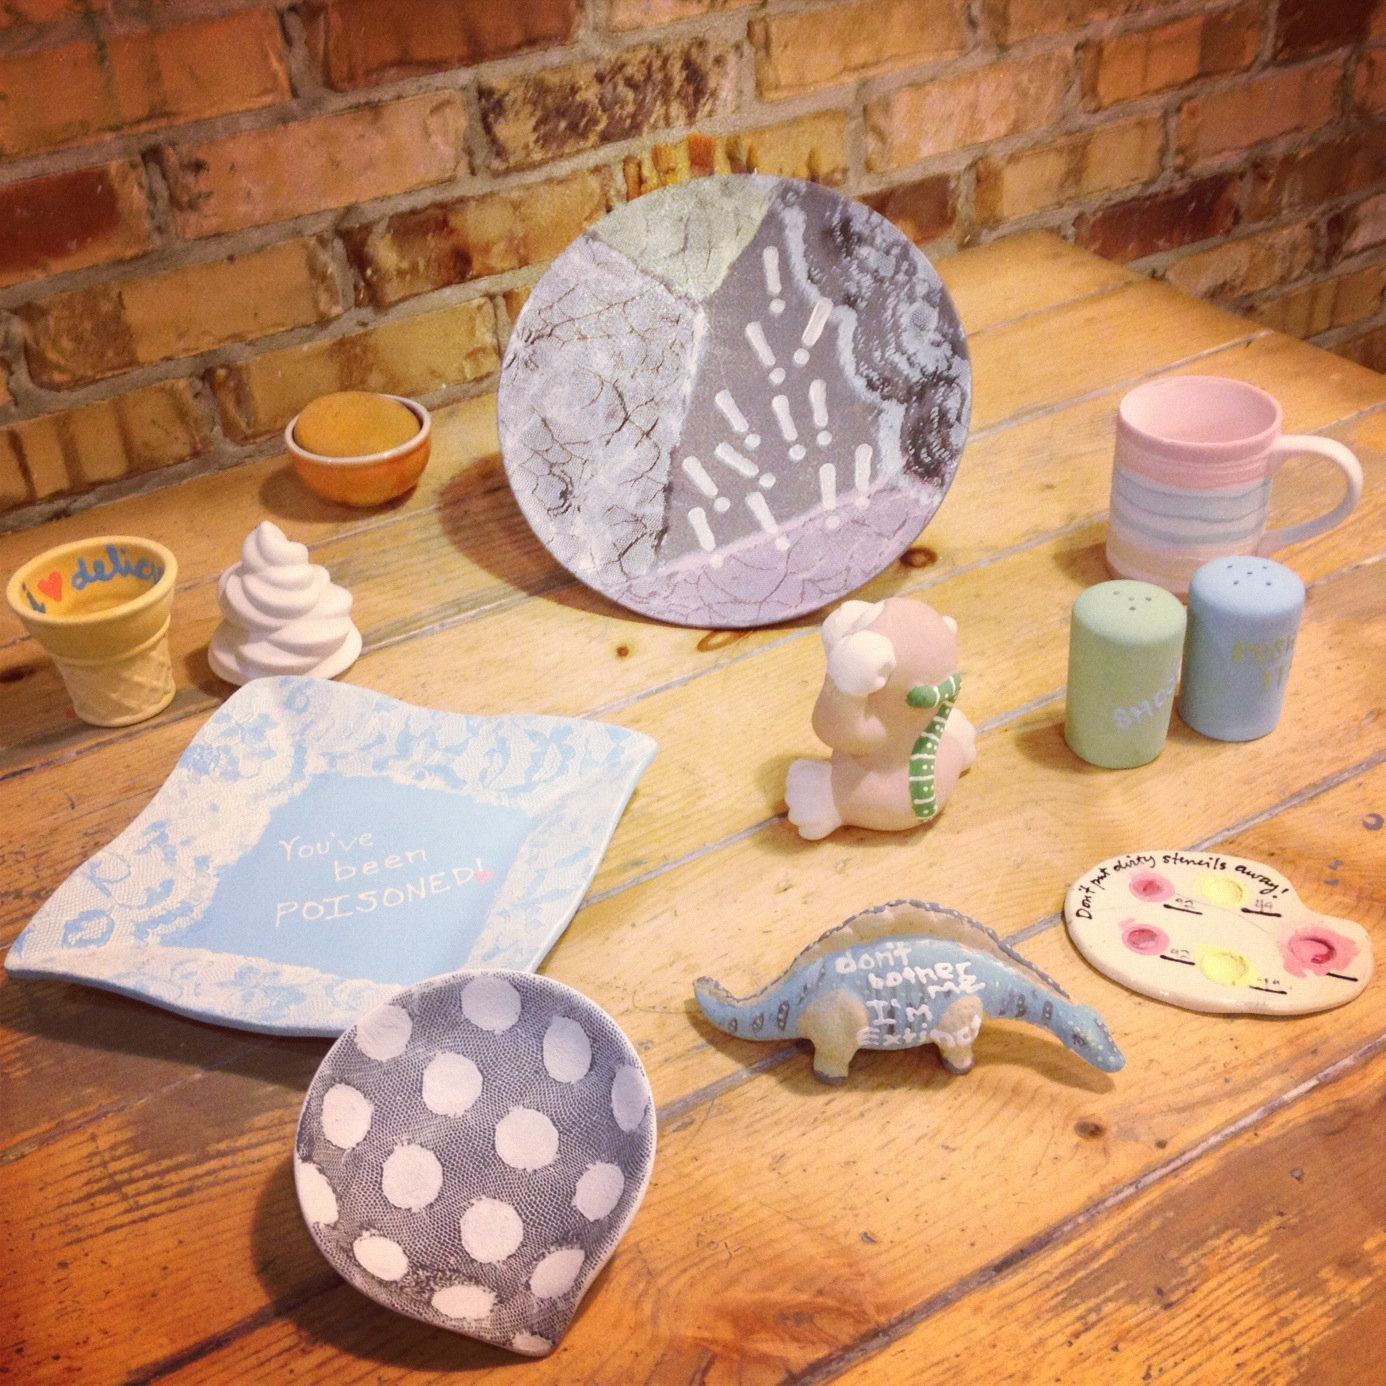 Paint your own ceramic pottery